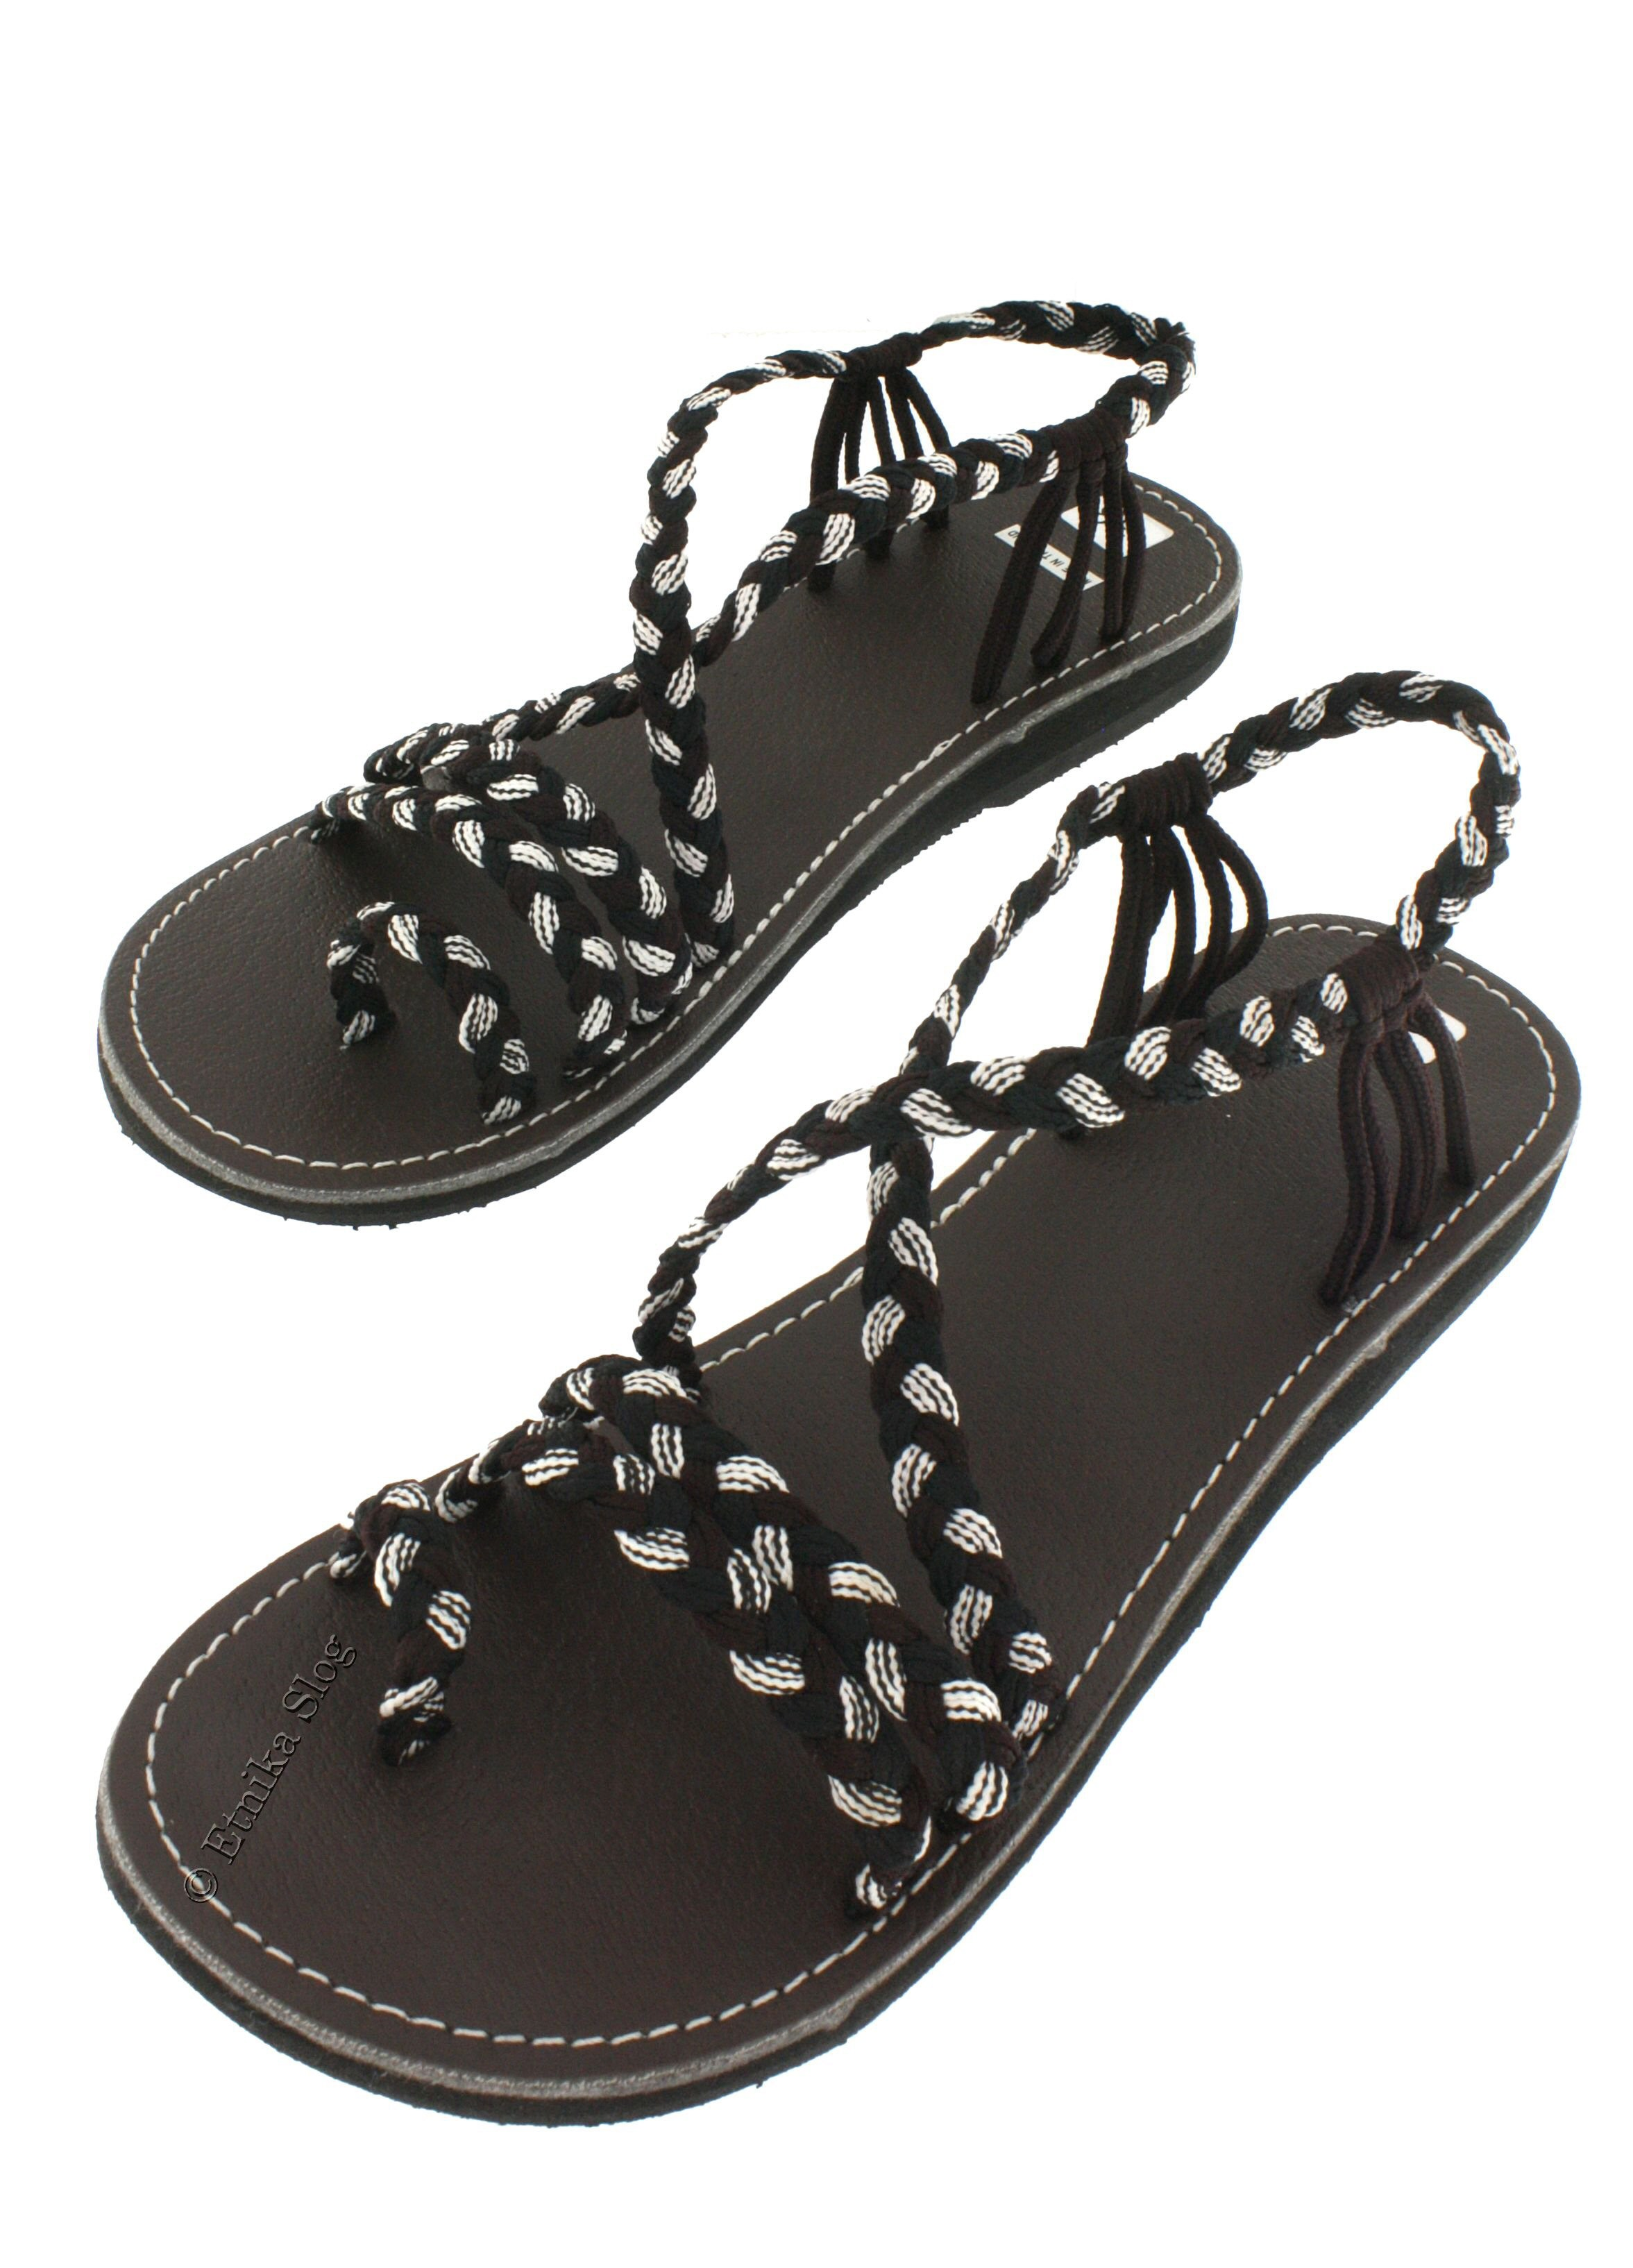 SANDALS IN LEATHER SN-AP05-BNM - Etnika Slog d.o.o.